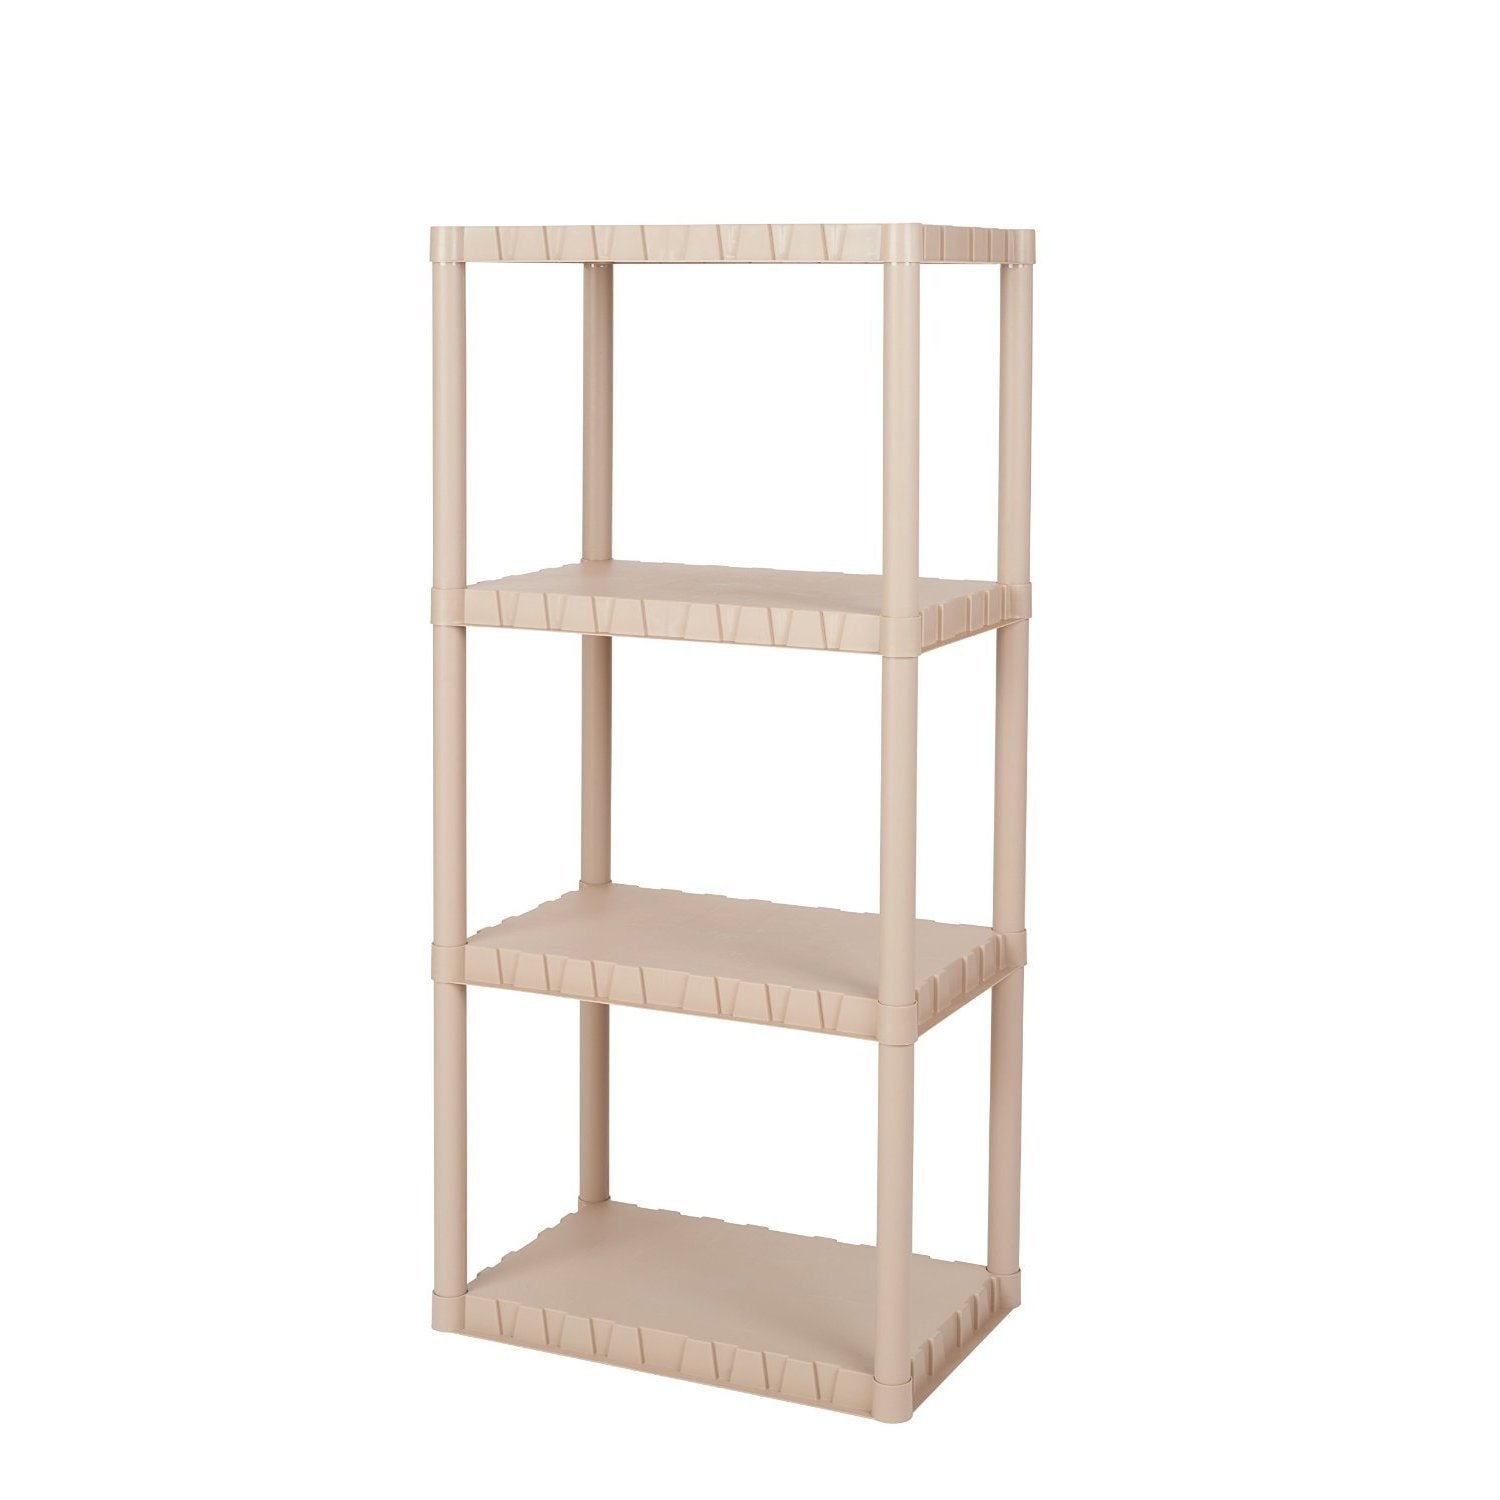 Shop Keter 4-tier 23 in. W x 15 in. D x 49 in. H Sand Freestanding Plastic Shelving Unit Storage Rack - Free Shipping On Orders Over $45 - Overstock.com - ...  sc 1 st  Overstock & Shop Keter 4-tier 23 in. W x 15 in. D x 49 in. H Sand Freestanding ...